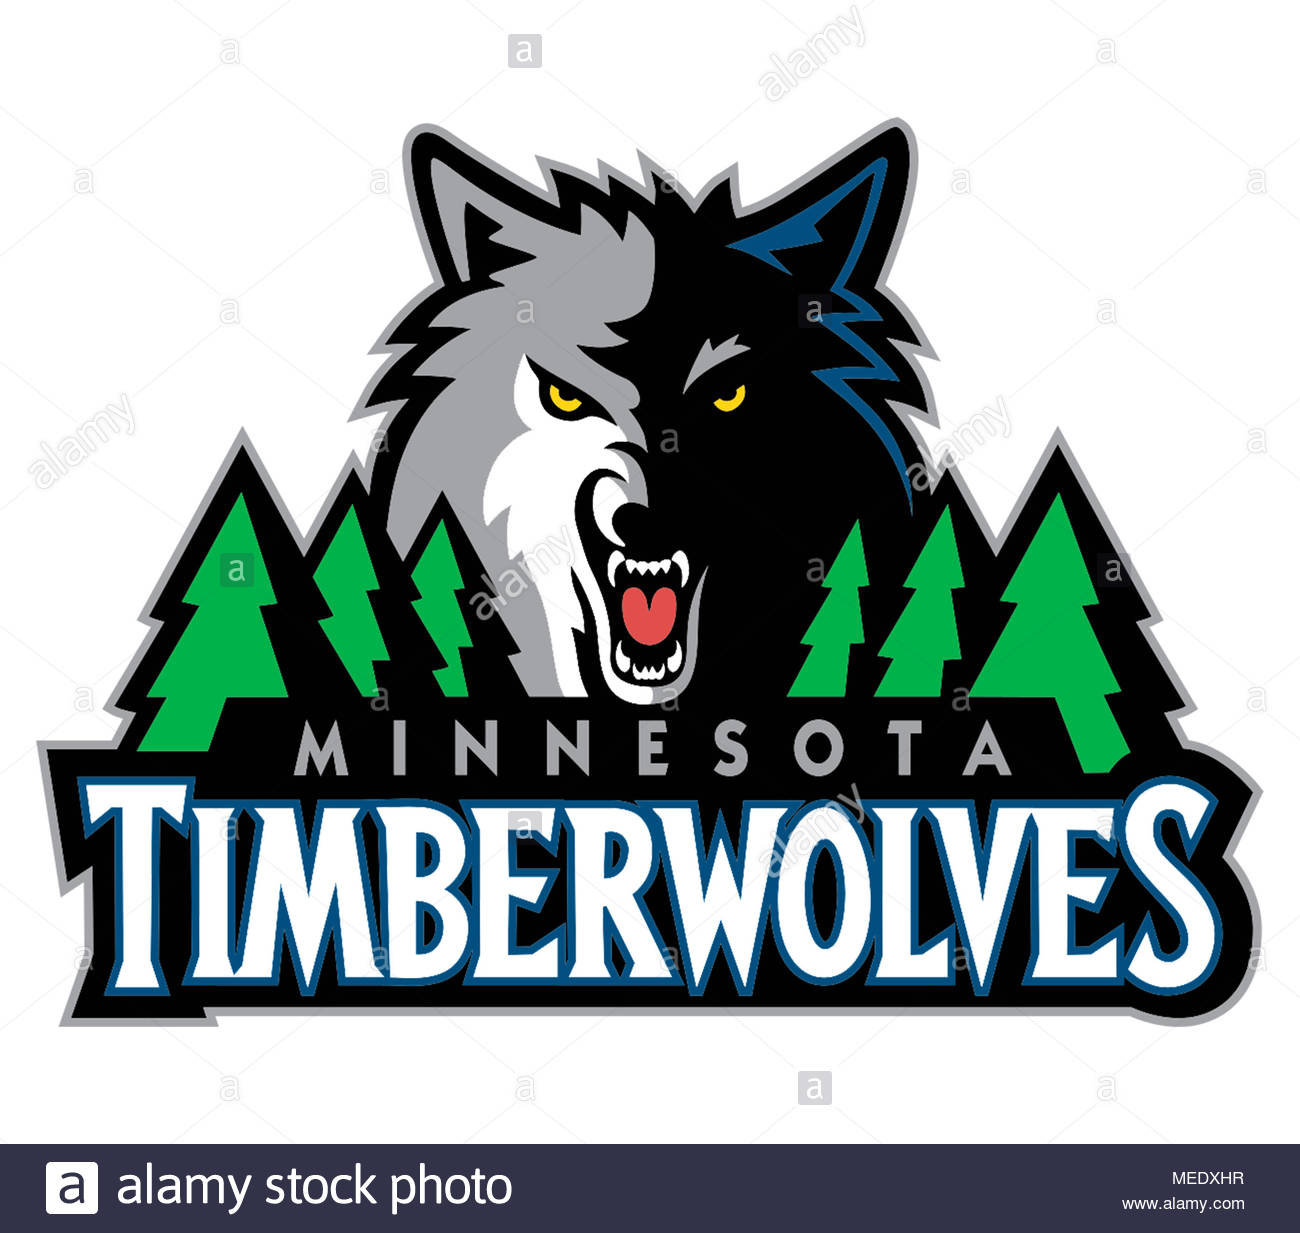 Minnesota Timberwolves icon l - Minnesota Timberwolves Clipart